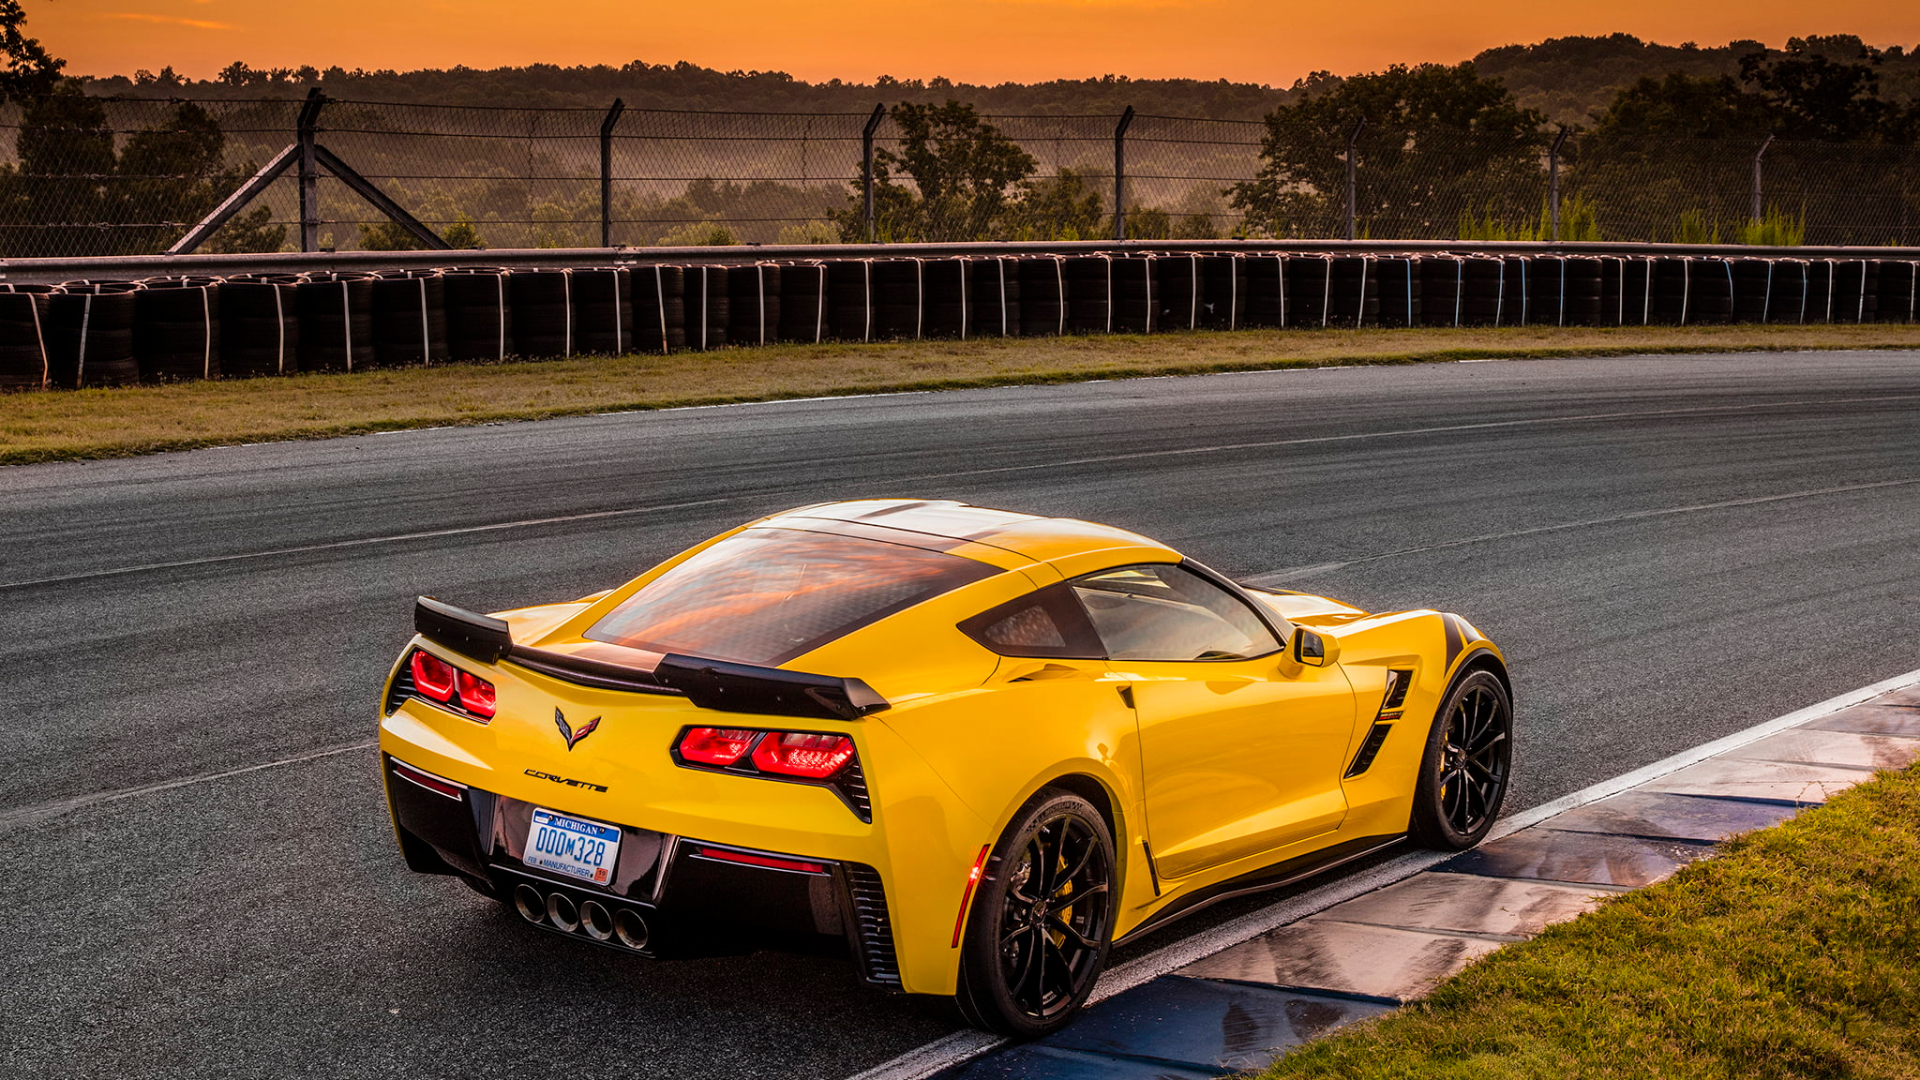 2017 Corvette Wallpapers